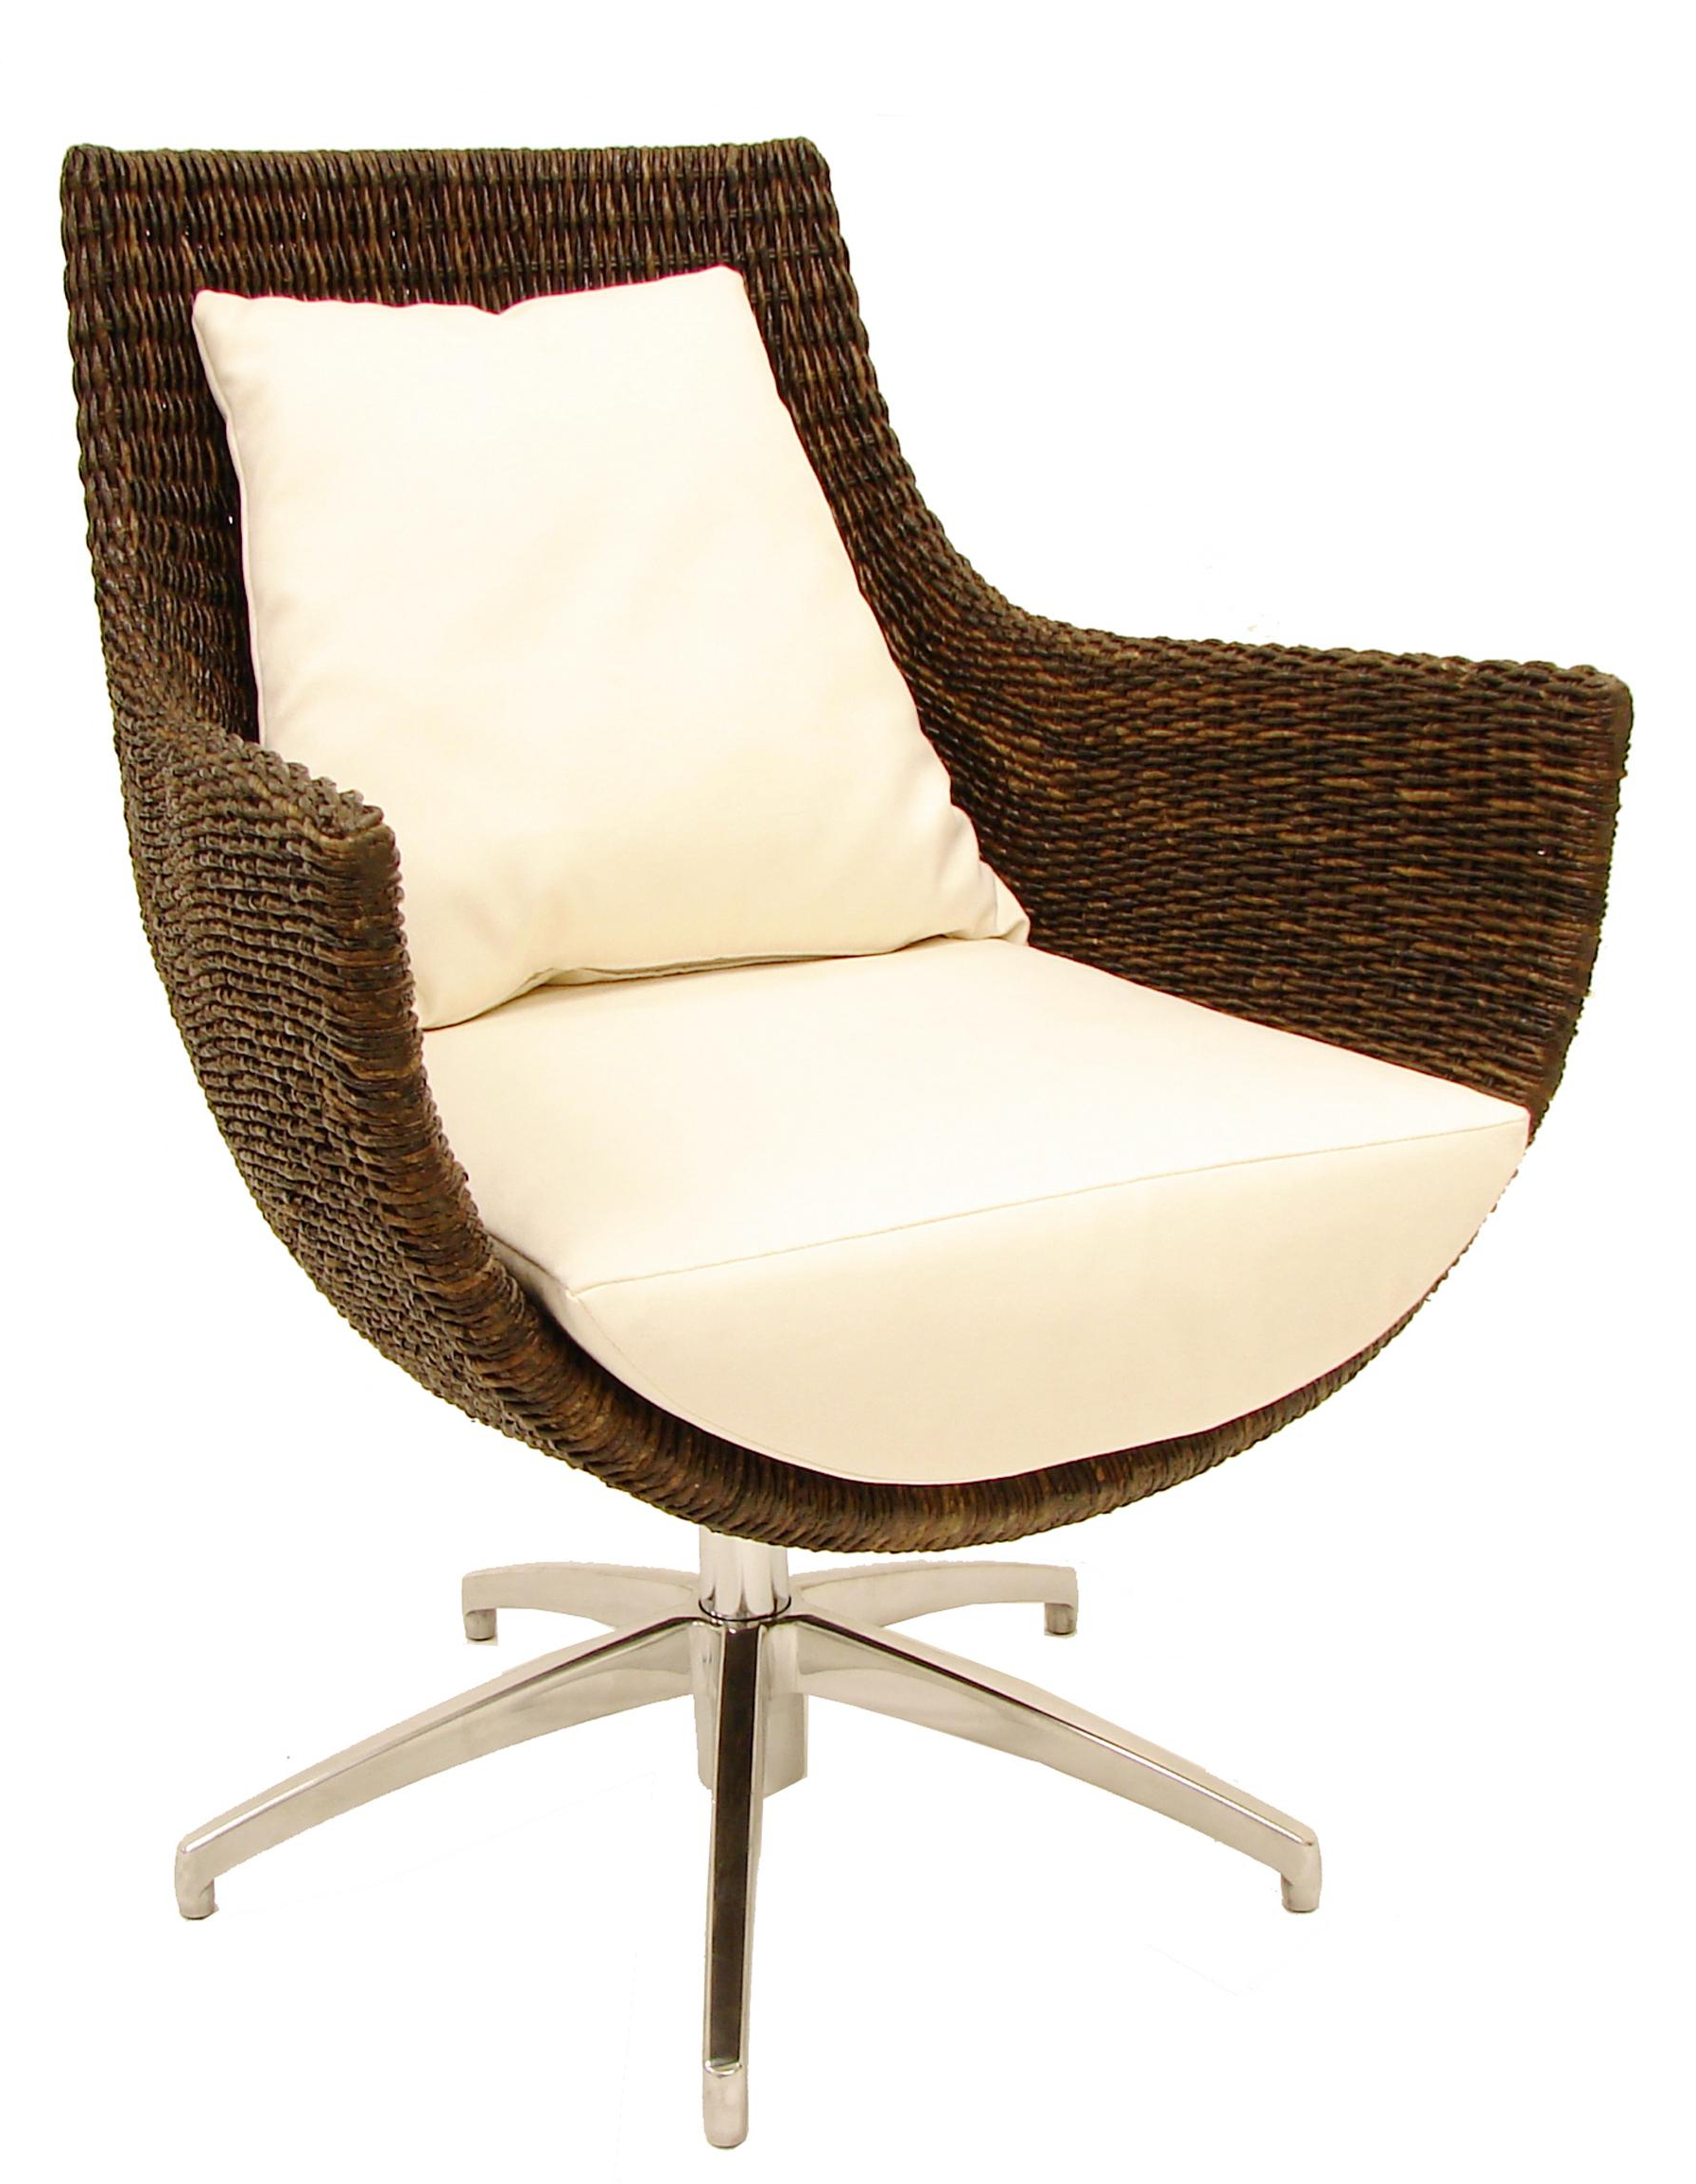 Woven High Back Swivel Chairs For Most Popular Palecek Accent Chairspalecek Modern High Back Rattan (View 20 of 30)